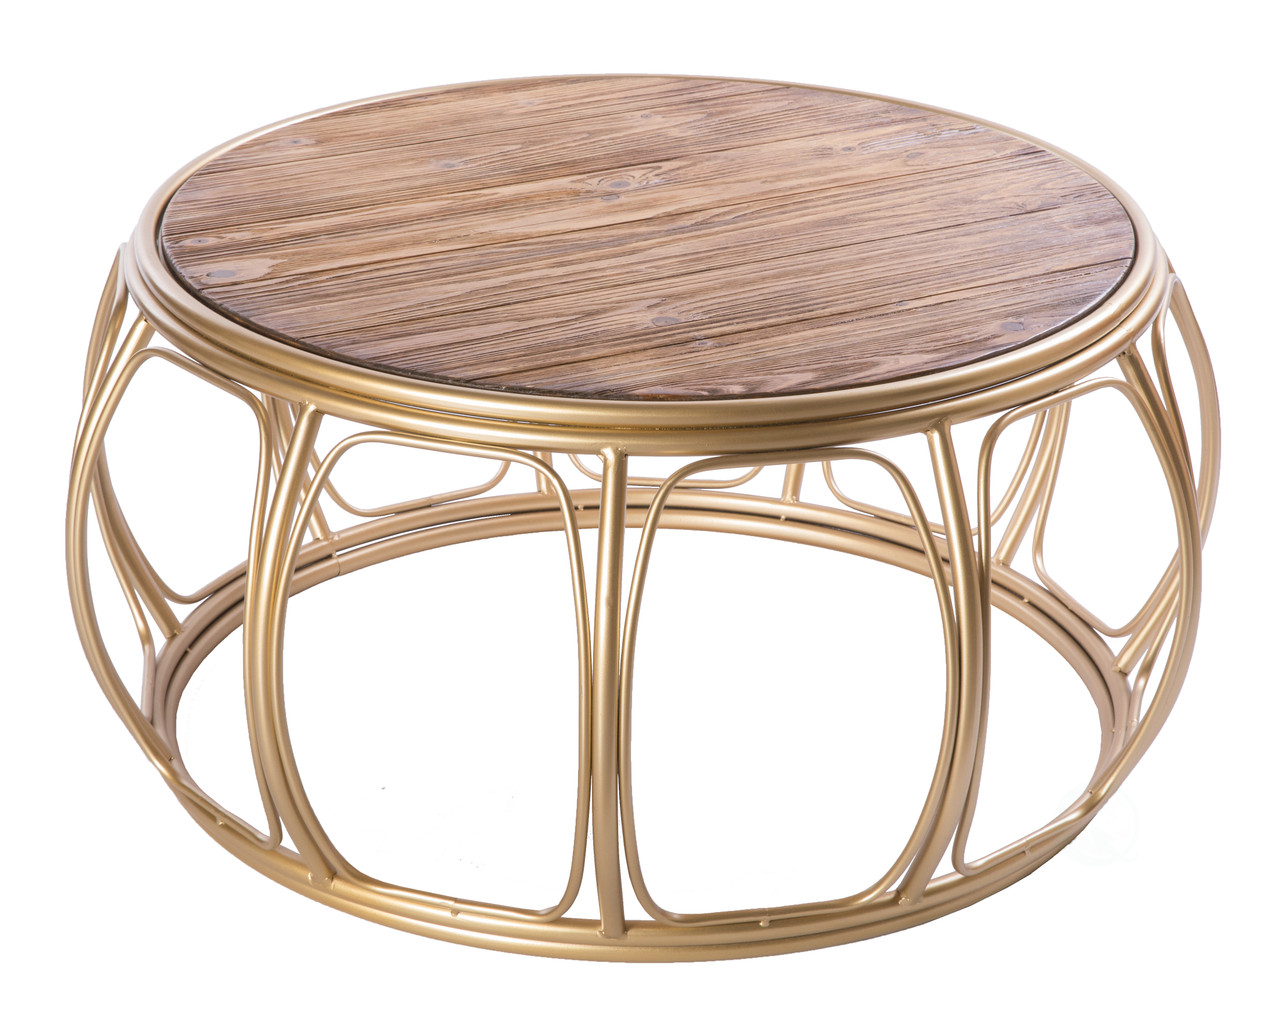 Large Round Wood And Metal Coffee Table Quickway Imports Inc